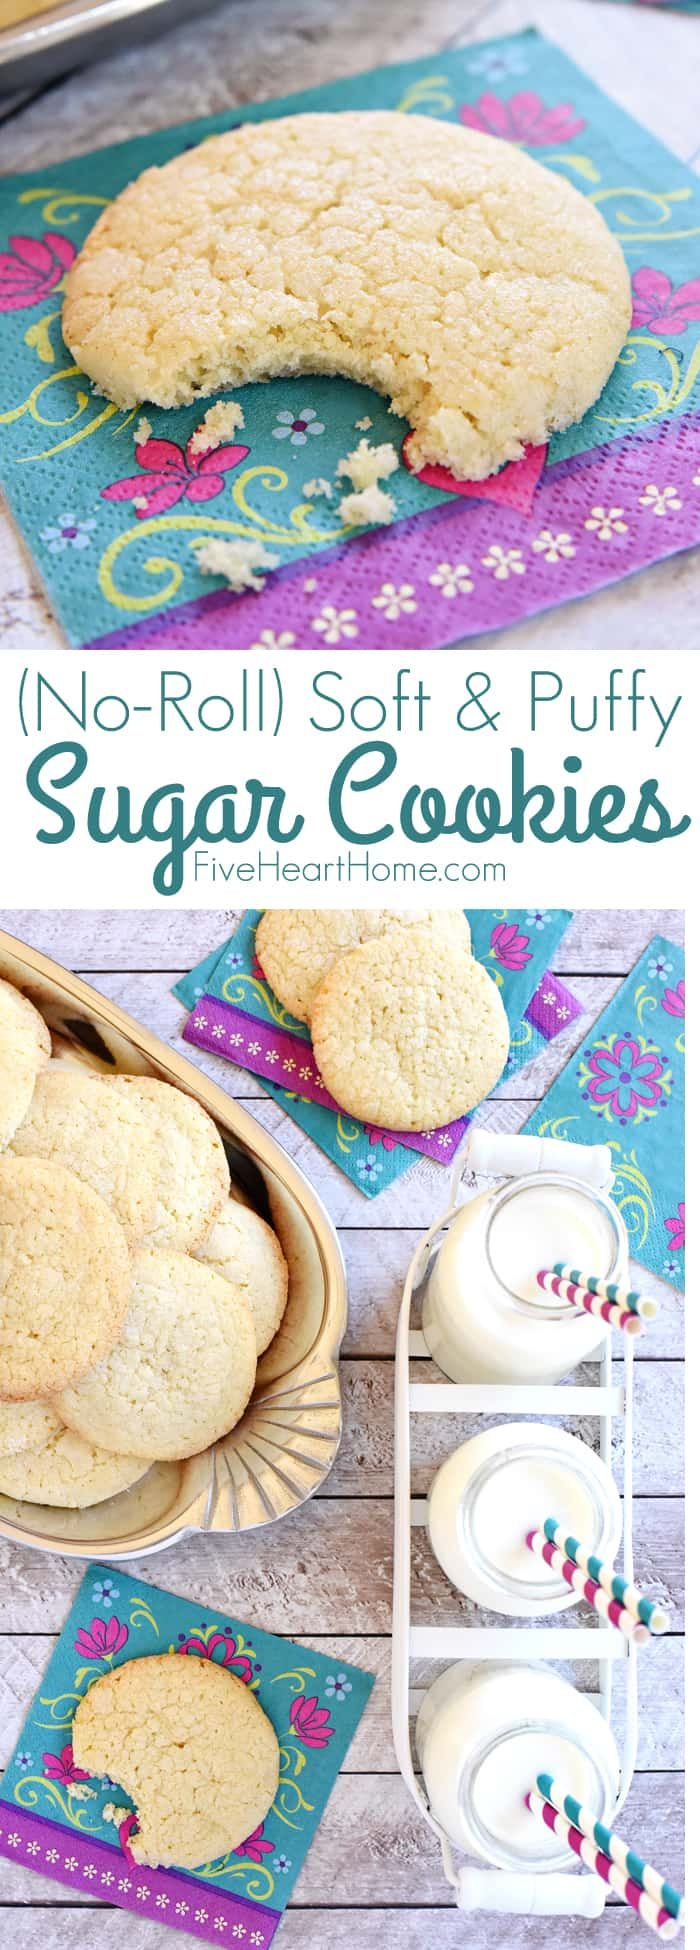 Easy Sugar Cookies ~ require NO ROLLING! They're soft and puffy with tender centers, a crunchy coating of sugar, and loads of vanilla flavor! | FiveHeartHome #sugarcookies #easysugarcookies #sugarcookierecipe